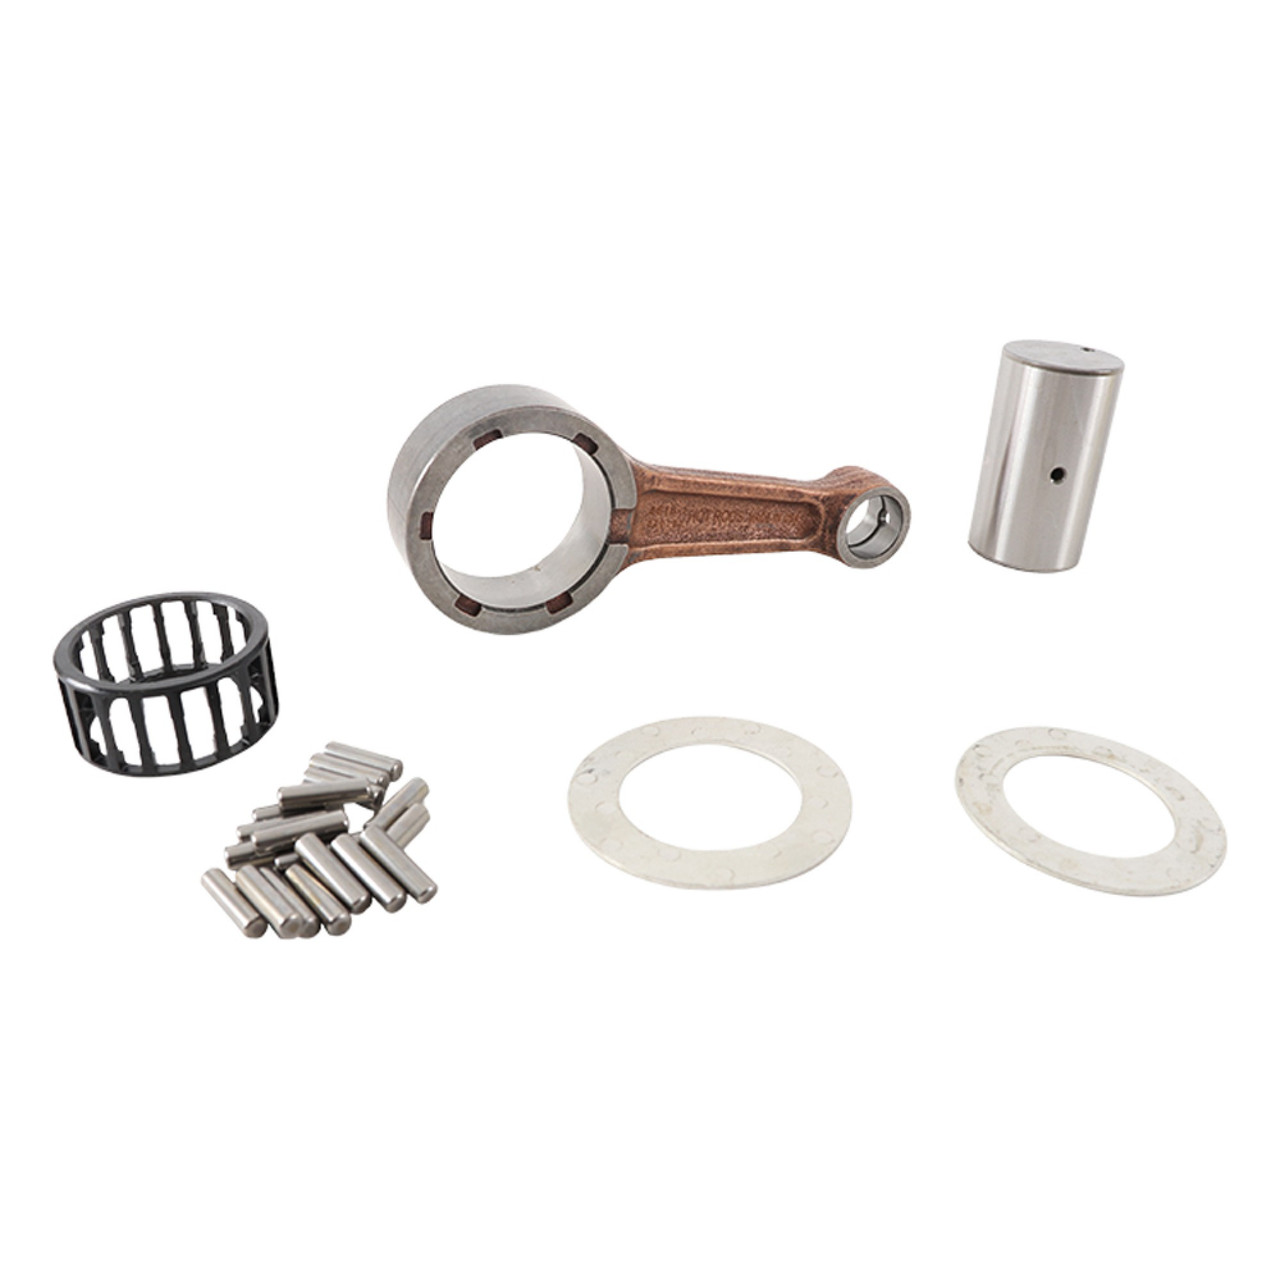 Connecting Rod Kit For 2005 Honda CRF250R Offroad Motorcycle Hot Rods 8616